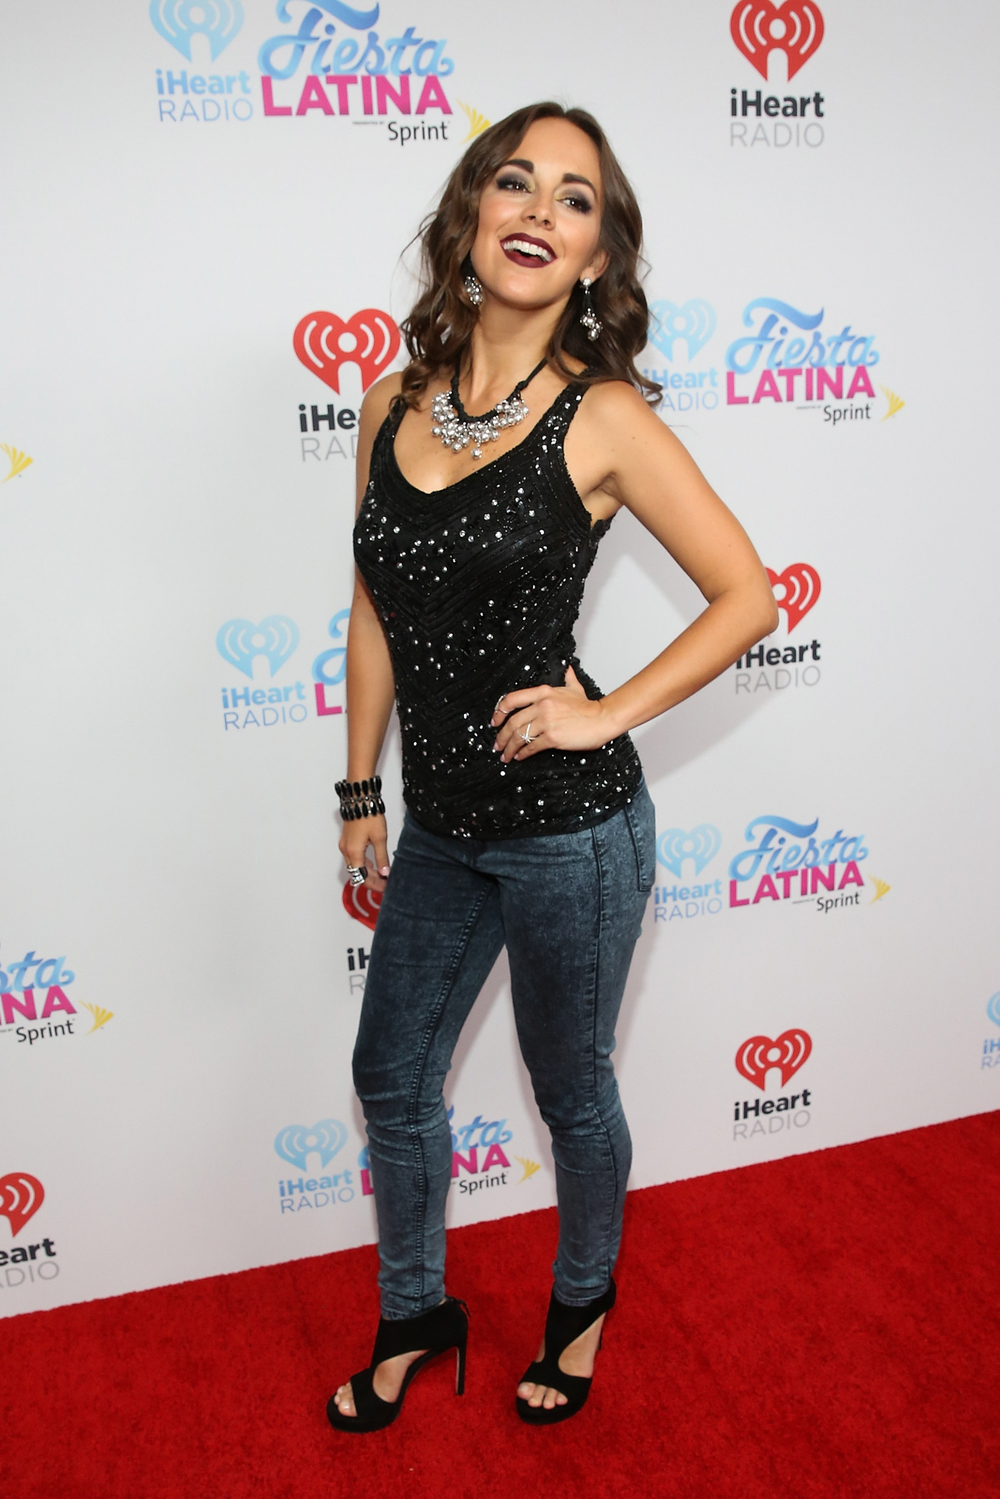 MIAMI, FL - NOVEMBER 07:  Maria Elisa Camargo attends iHeartRadio Fiesta Latina presented by Sprint at American Airlines Arena on November 7, 2015 in Miami, Florida.  (Photo by Aaron Davidson/Getty Images for iHeartMedia) *** Local Caption *** Maria Elisa Camargo